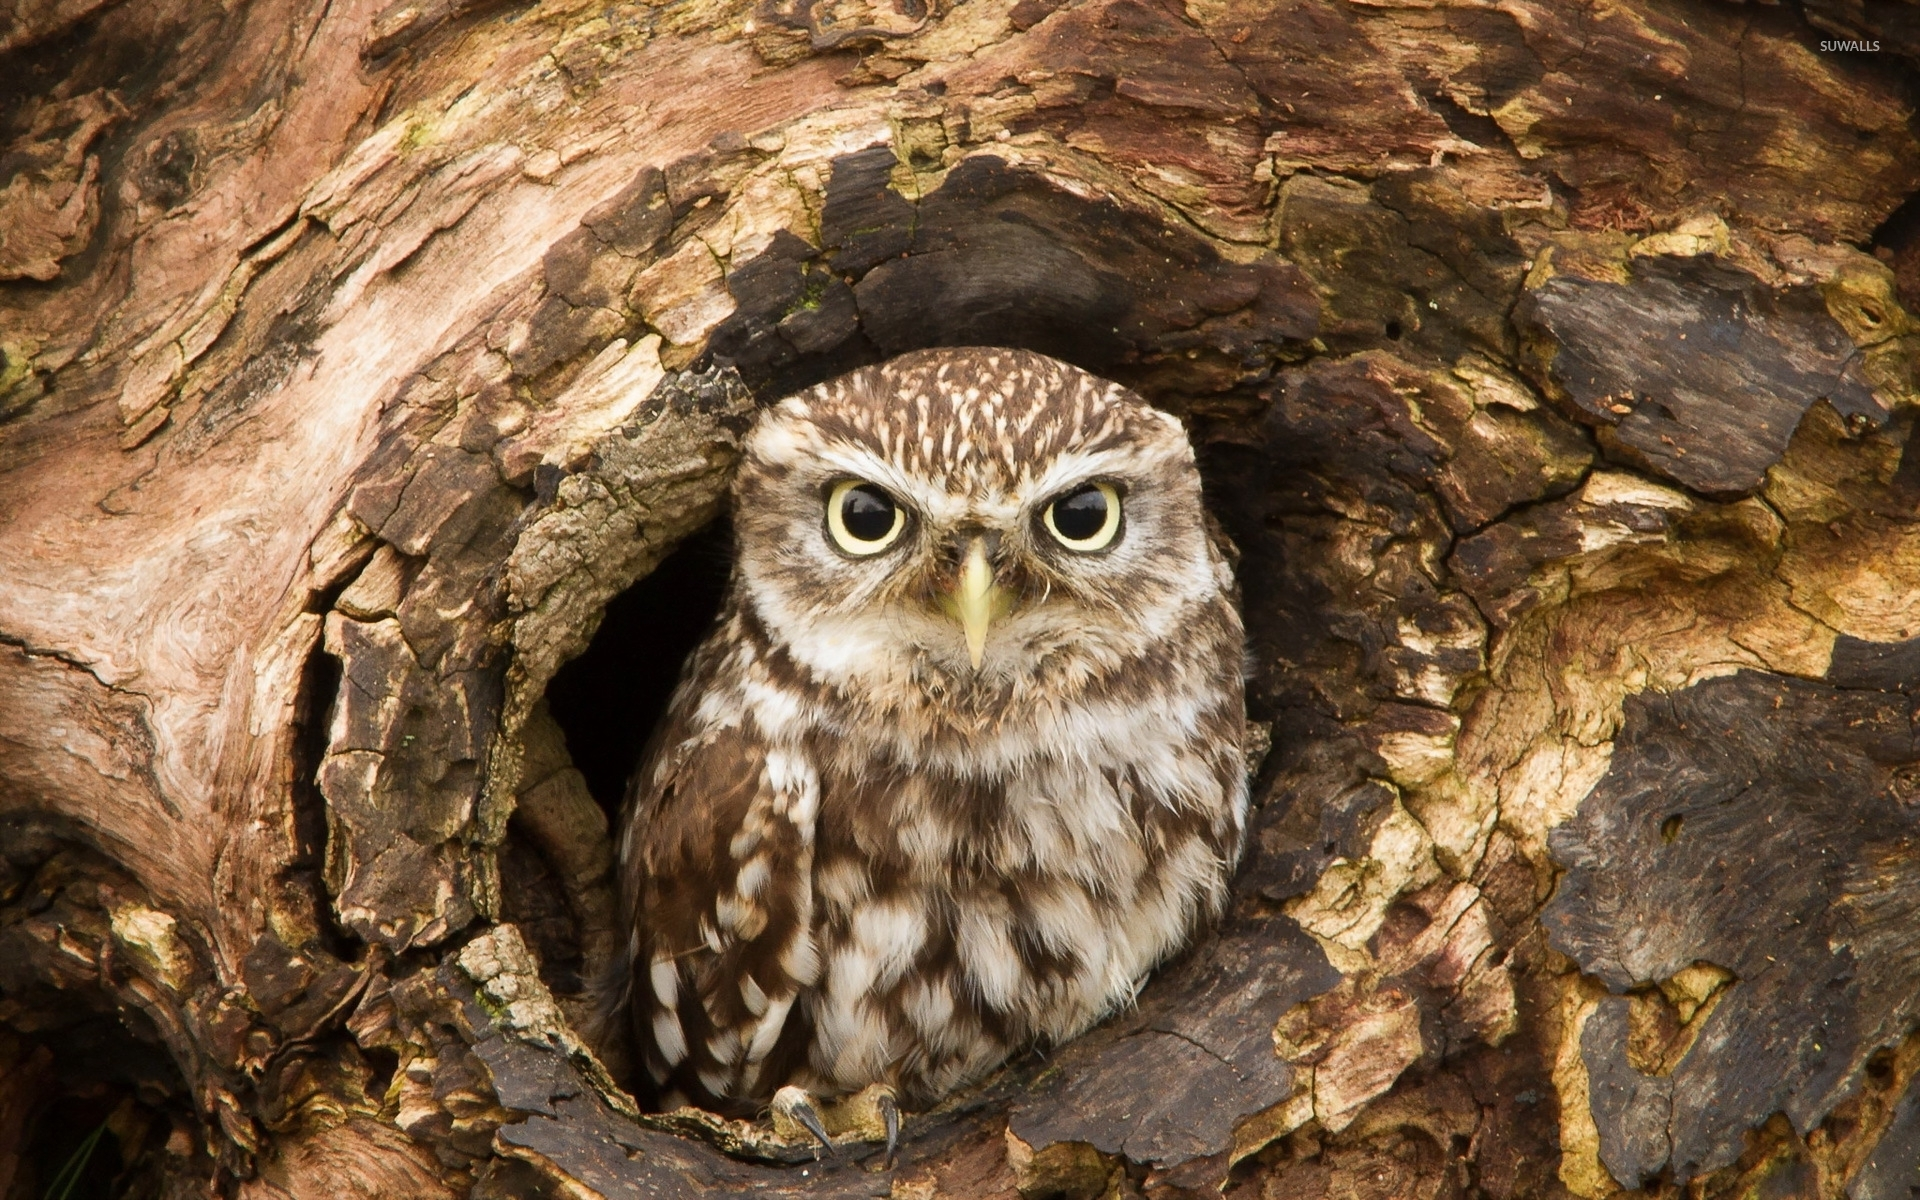 owl in a tree hollow wallpaper wallpapers 47580